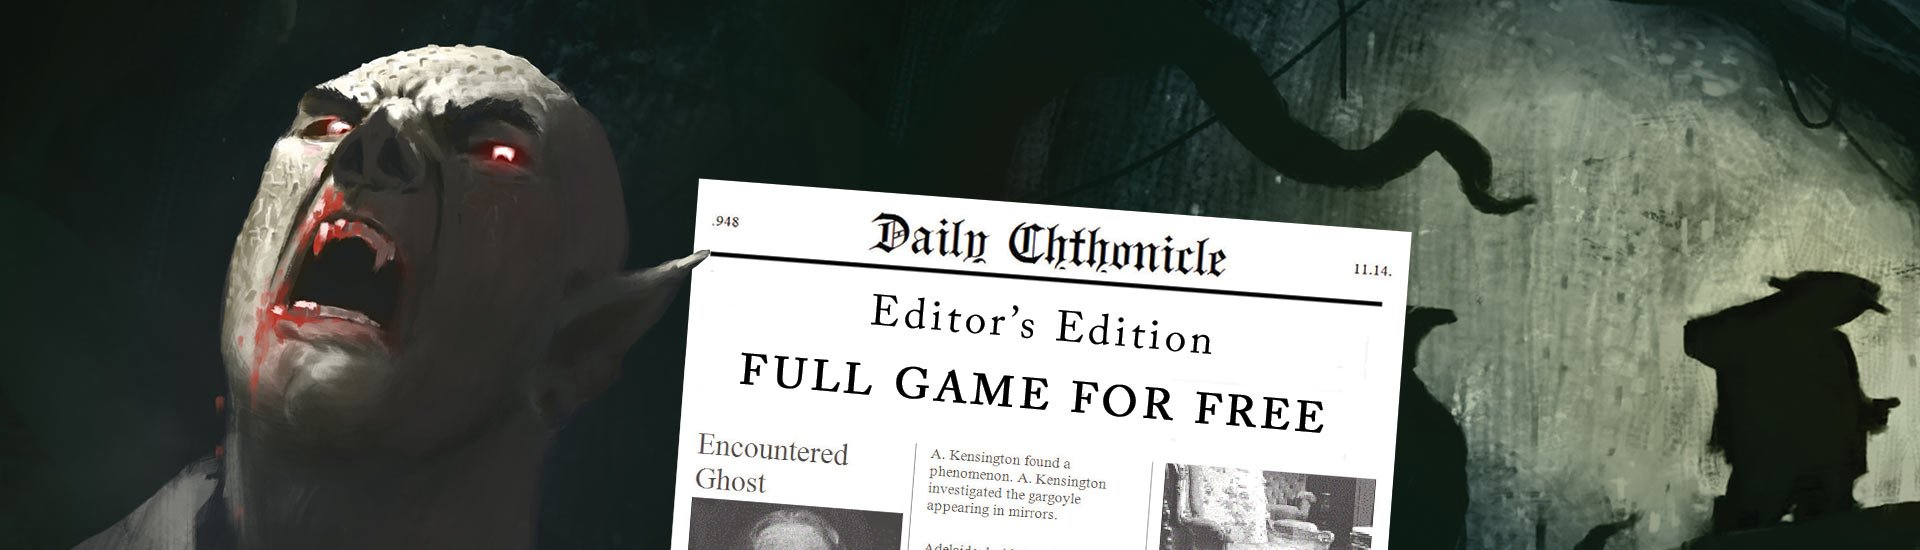 Daily Chthonicle: Editor's Edition cover